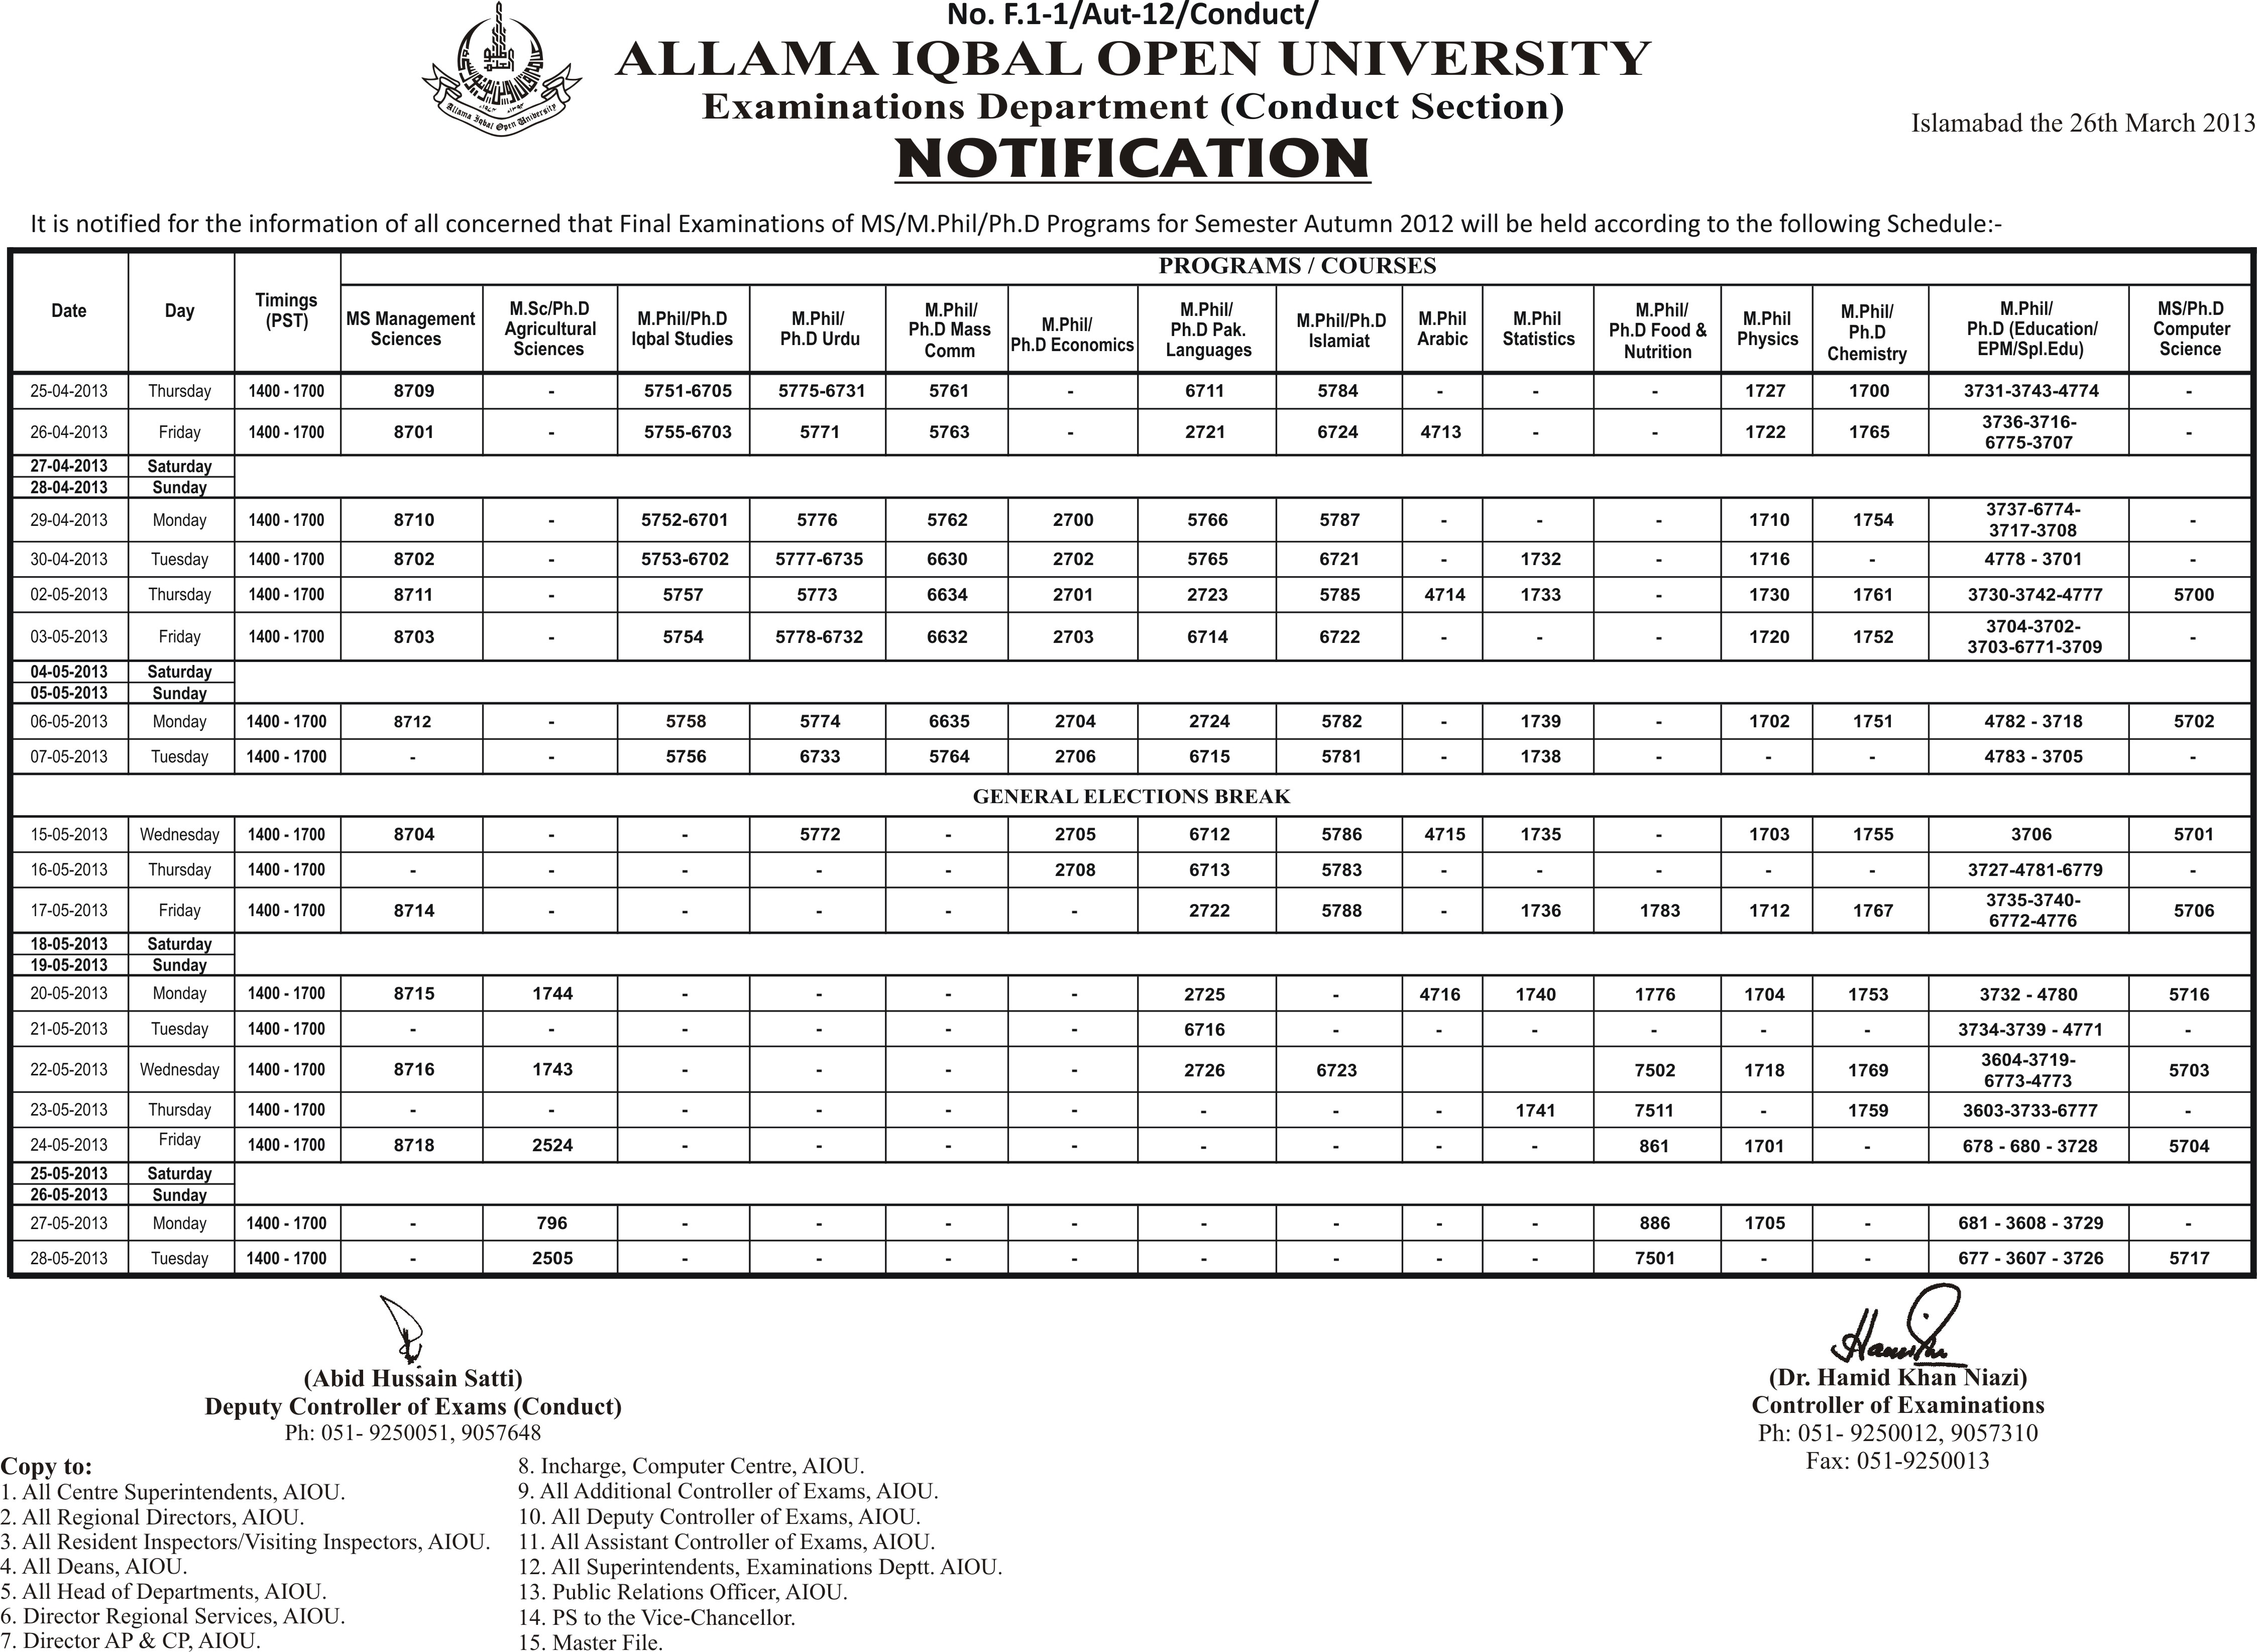 AIOU Datesheet  MS/M.Phil/Ph.D Programs